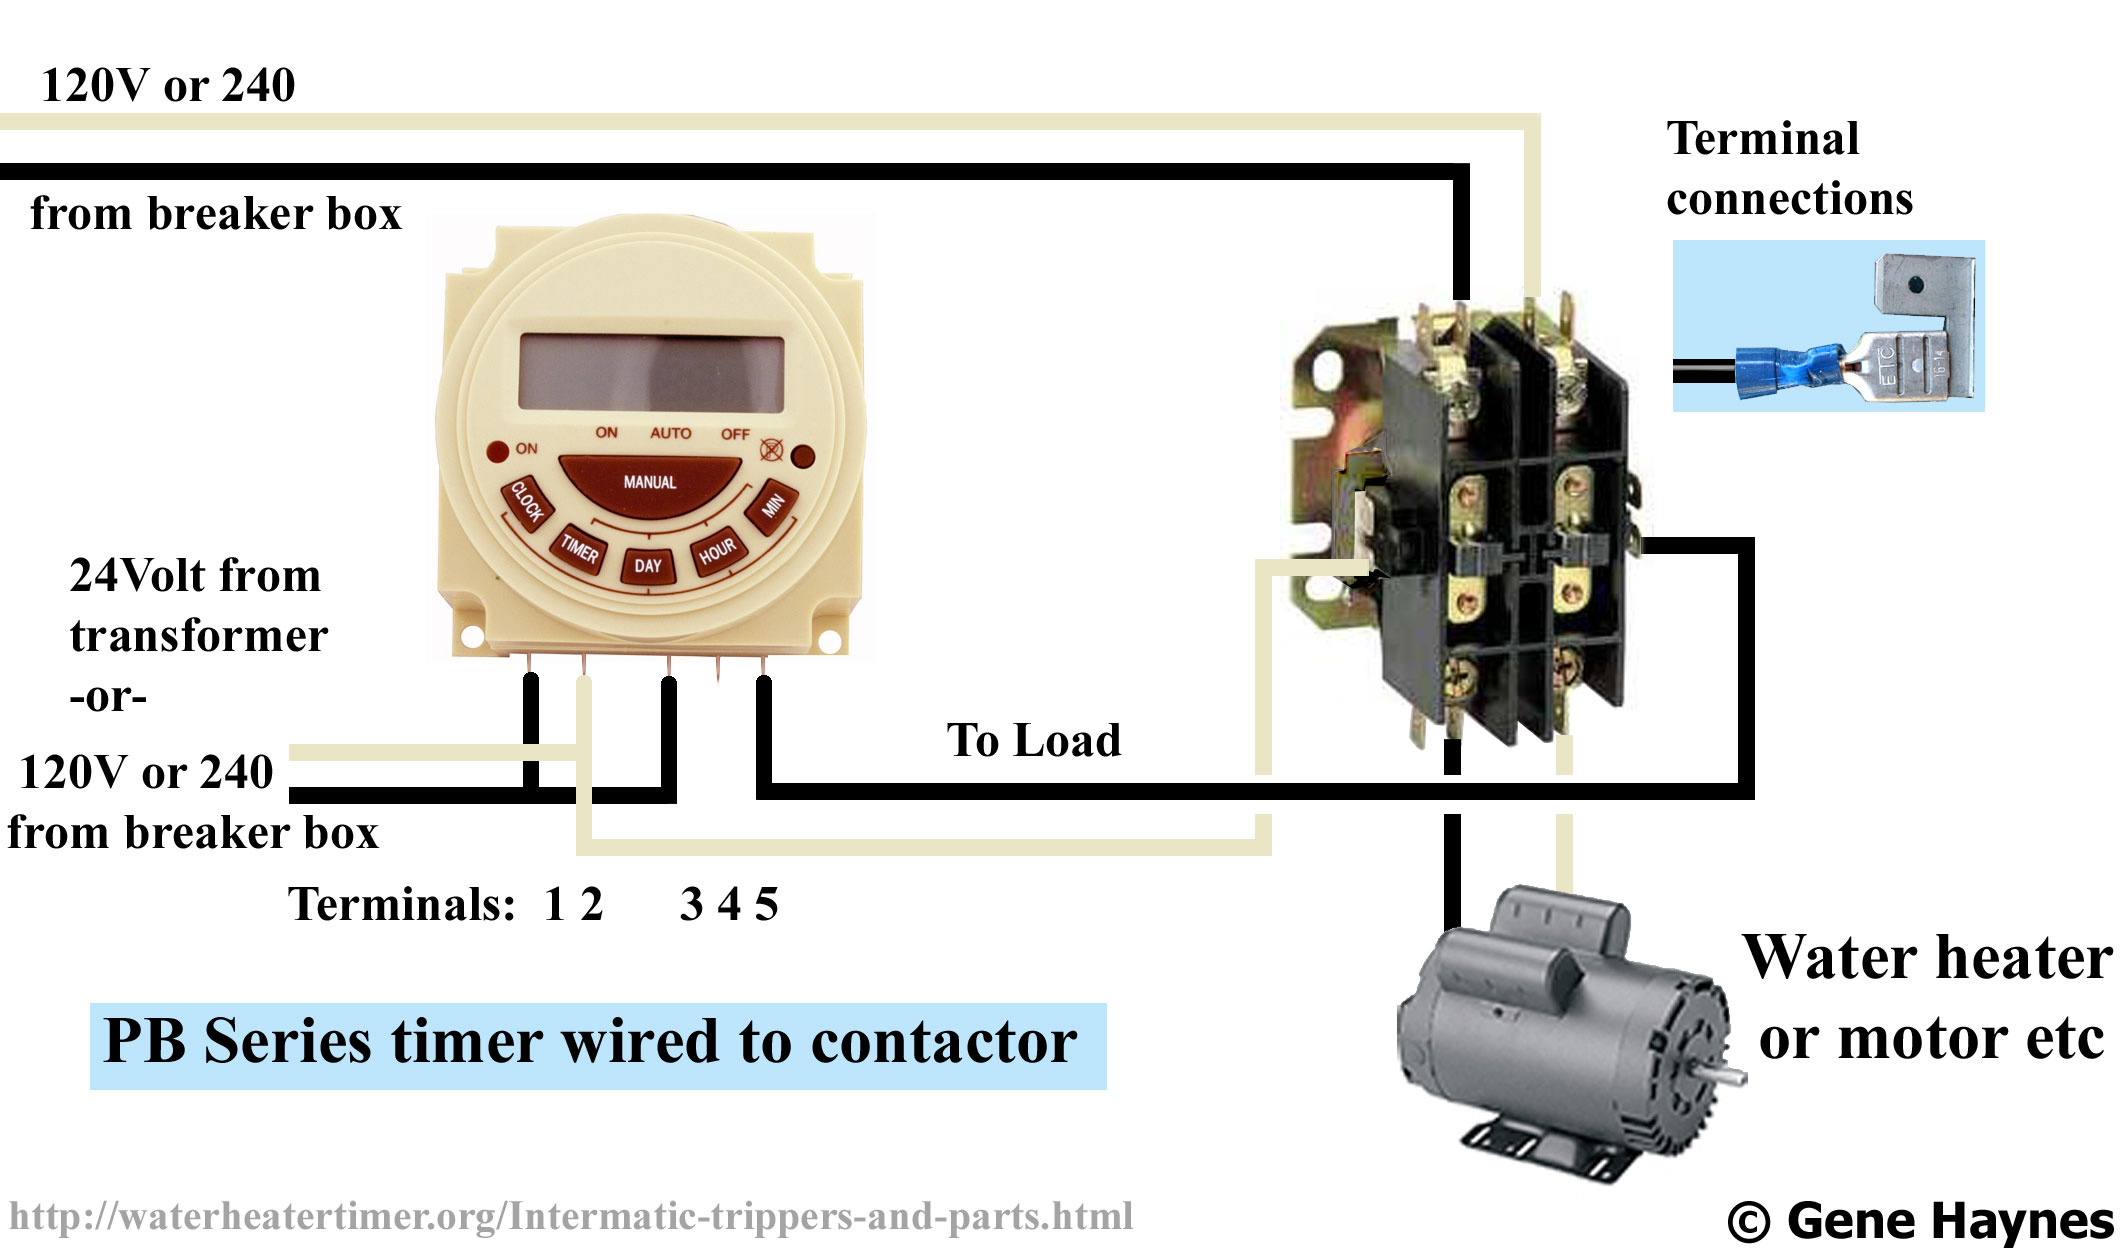 Pool Pump Wiring Diagram For 230 Volt Circuit Library Motor Pb Series Battery Operated Spa Timer 7 Programs Day 0r 24